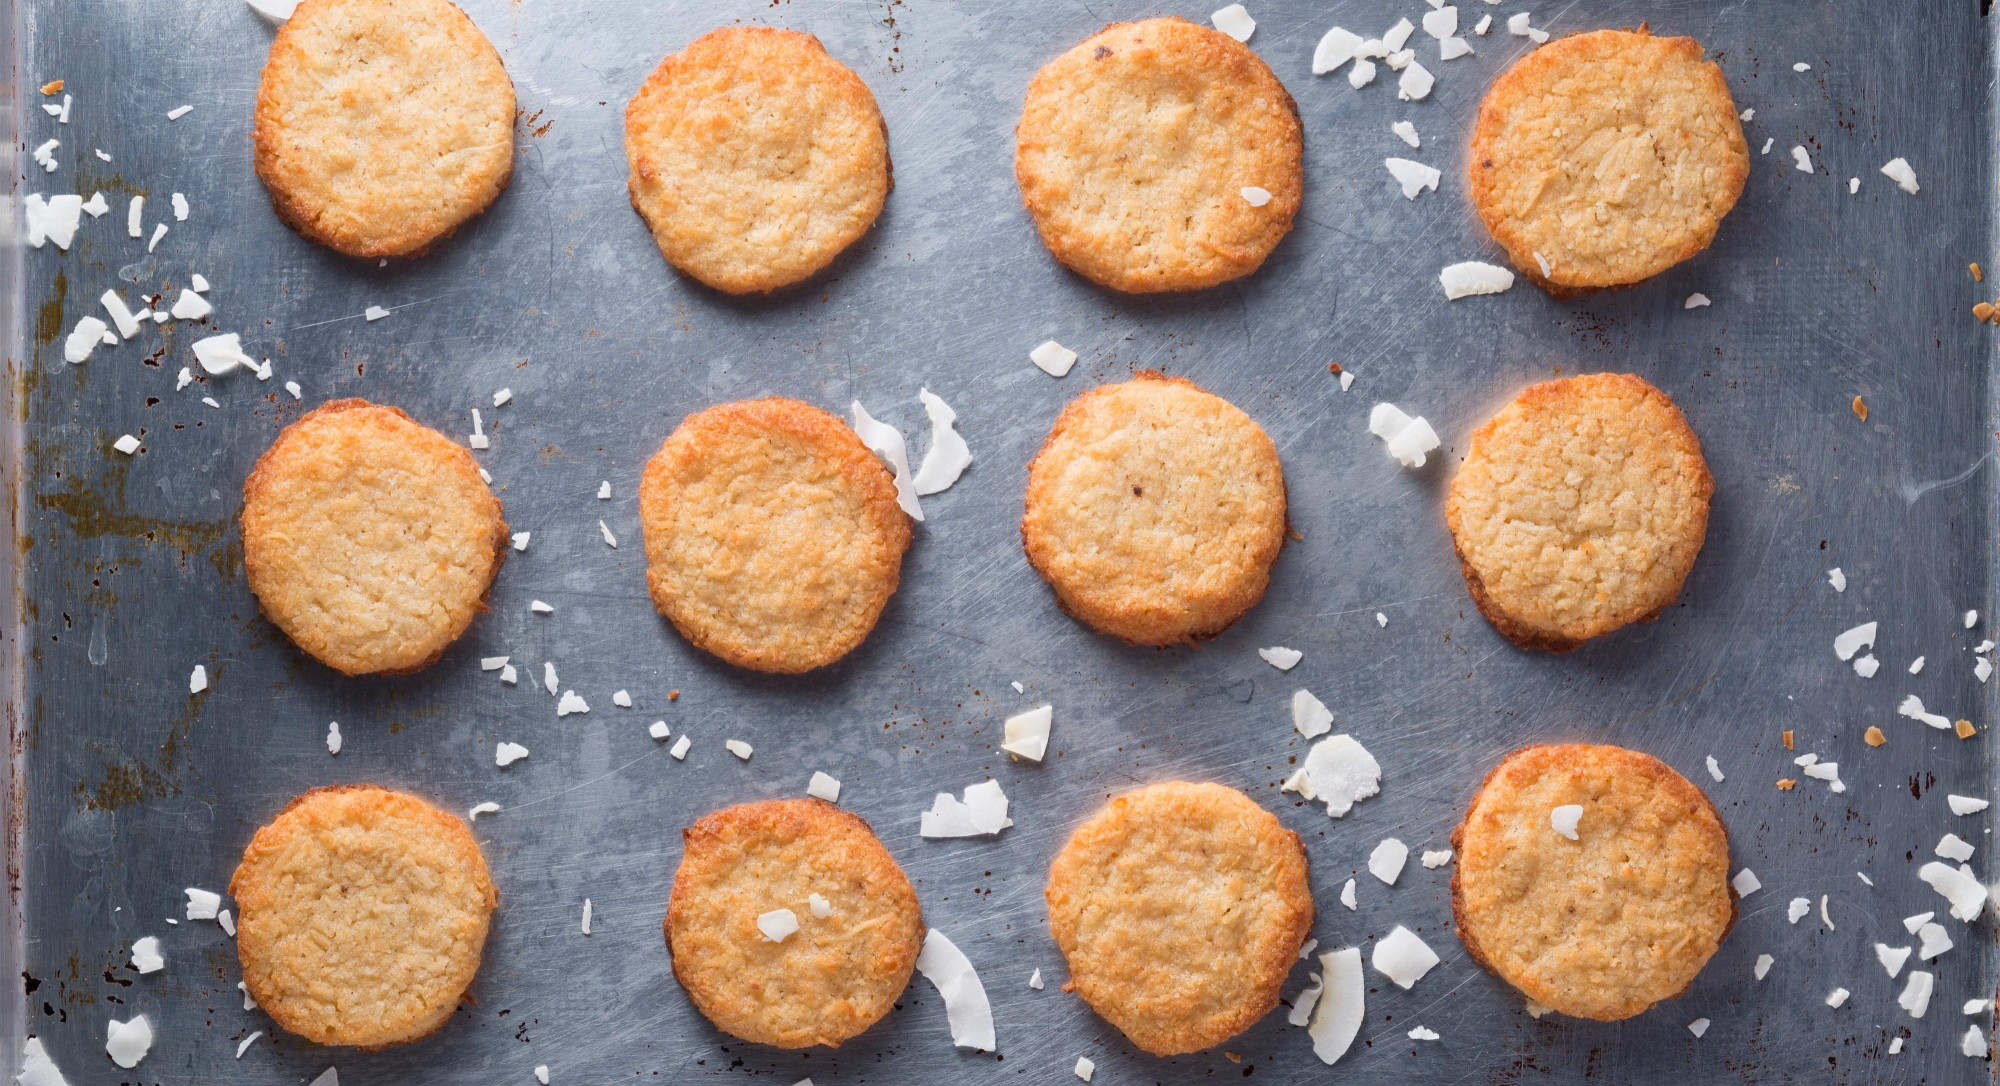 Crushing on Coconut? This Is the Cookie for You